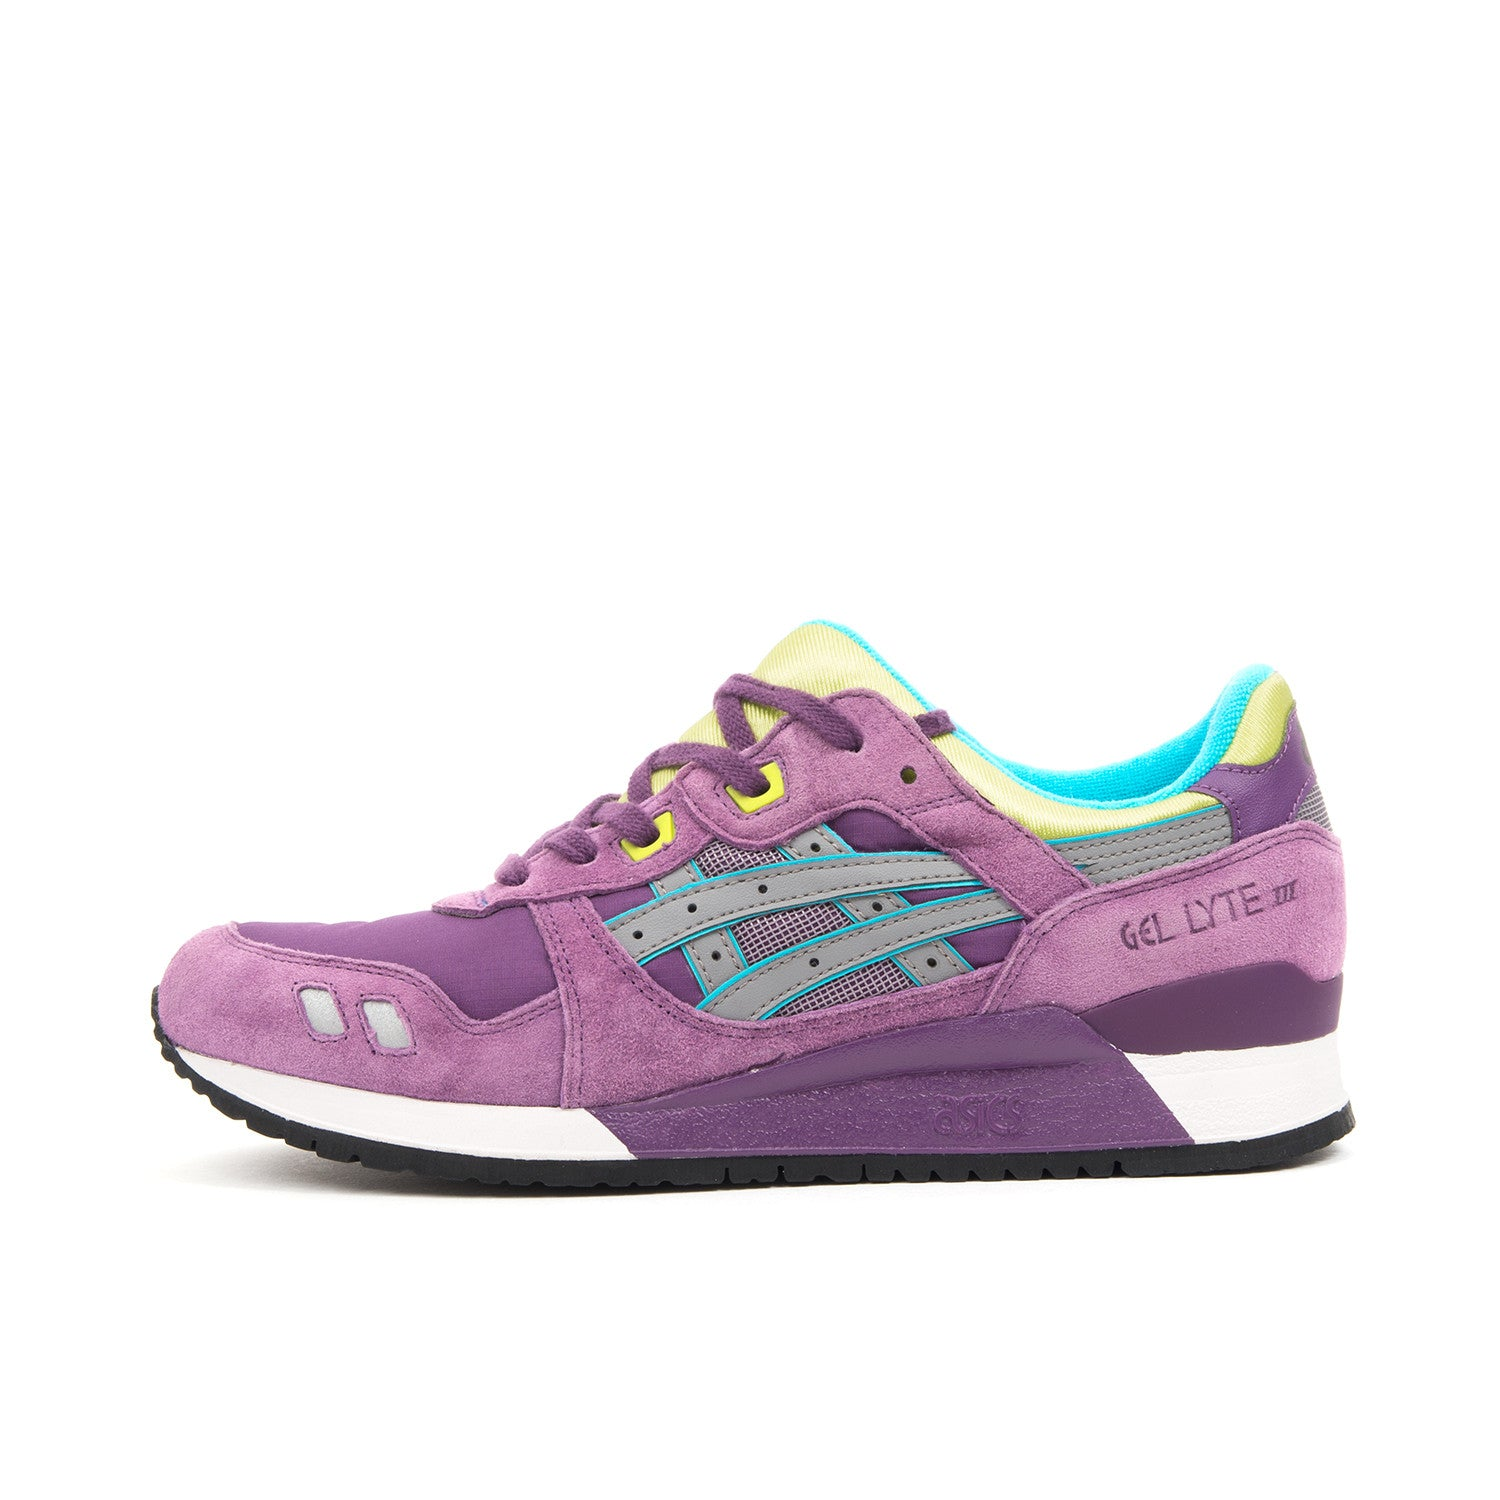 5cafc082fab4 Asics Gel-Lyte III Purple Grey – Concrete